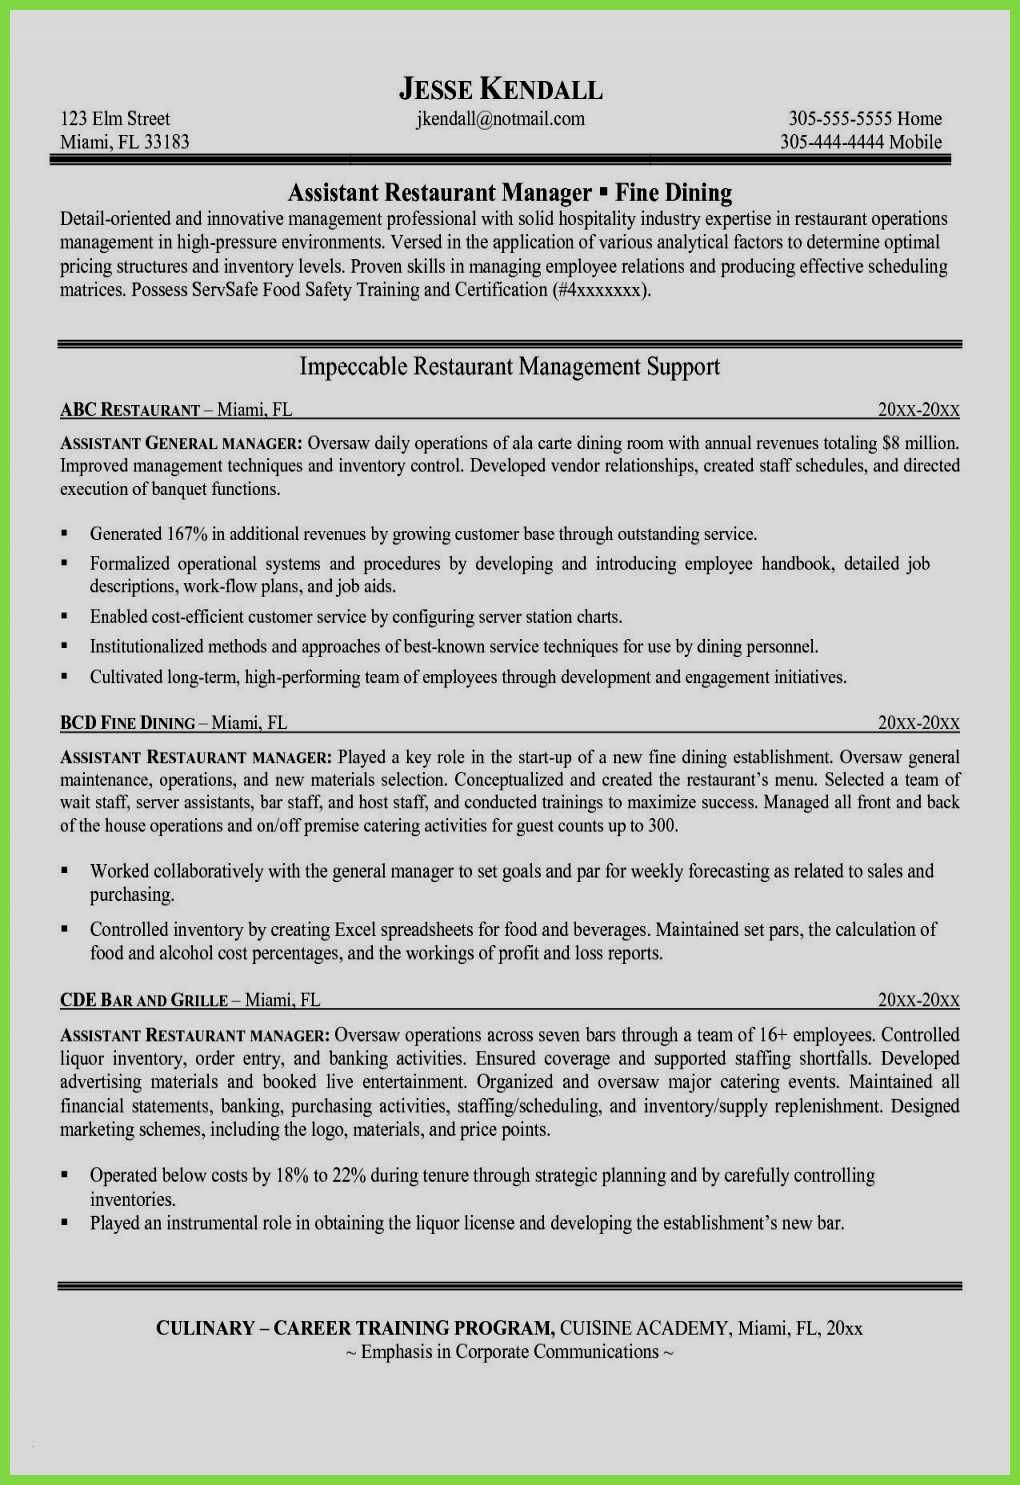 77 Inspiring Photos Of Example Resume Kitchen Assistant Check More At Https Www Ourpetscrawley Com 77 Inspiring Photos Of Example Resume Kitchen Assistant